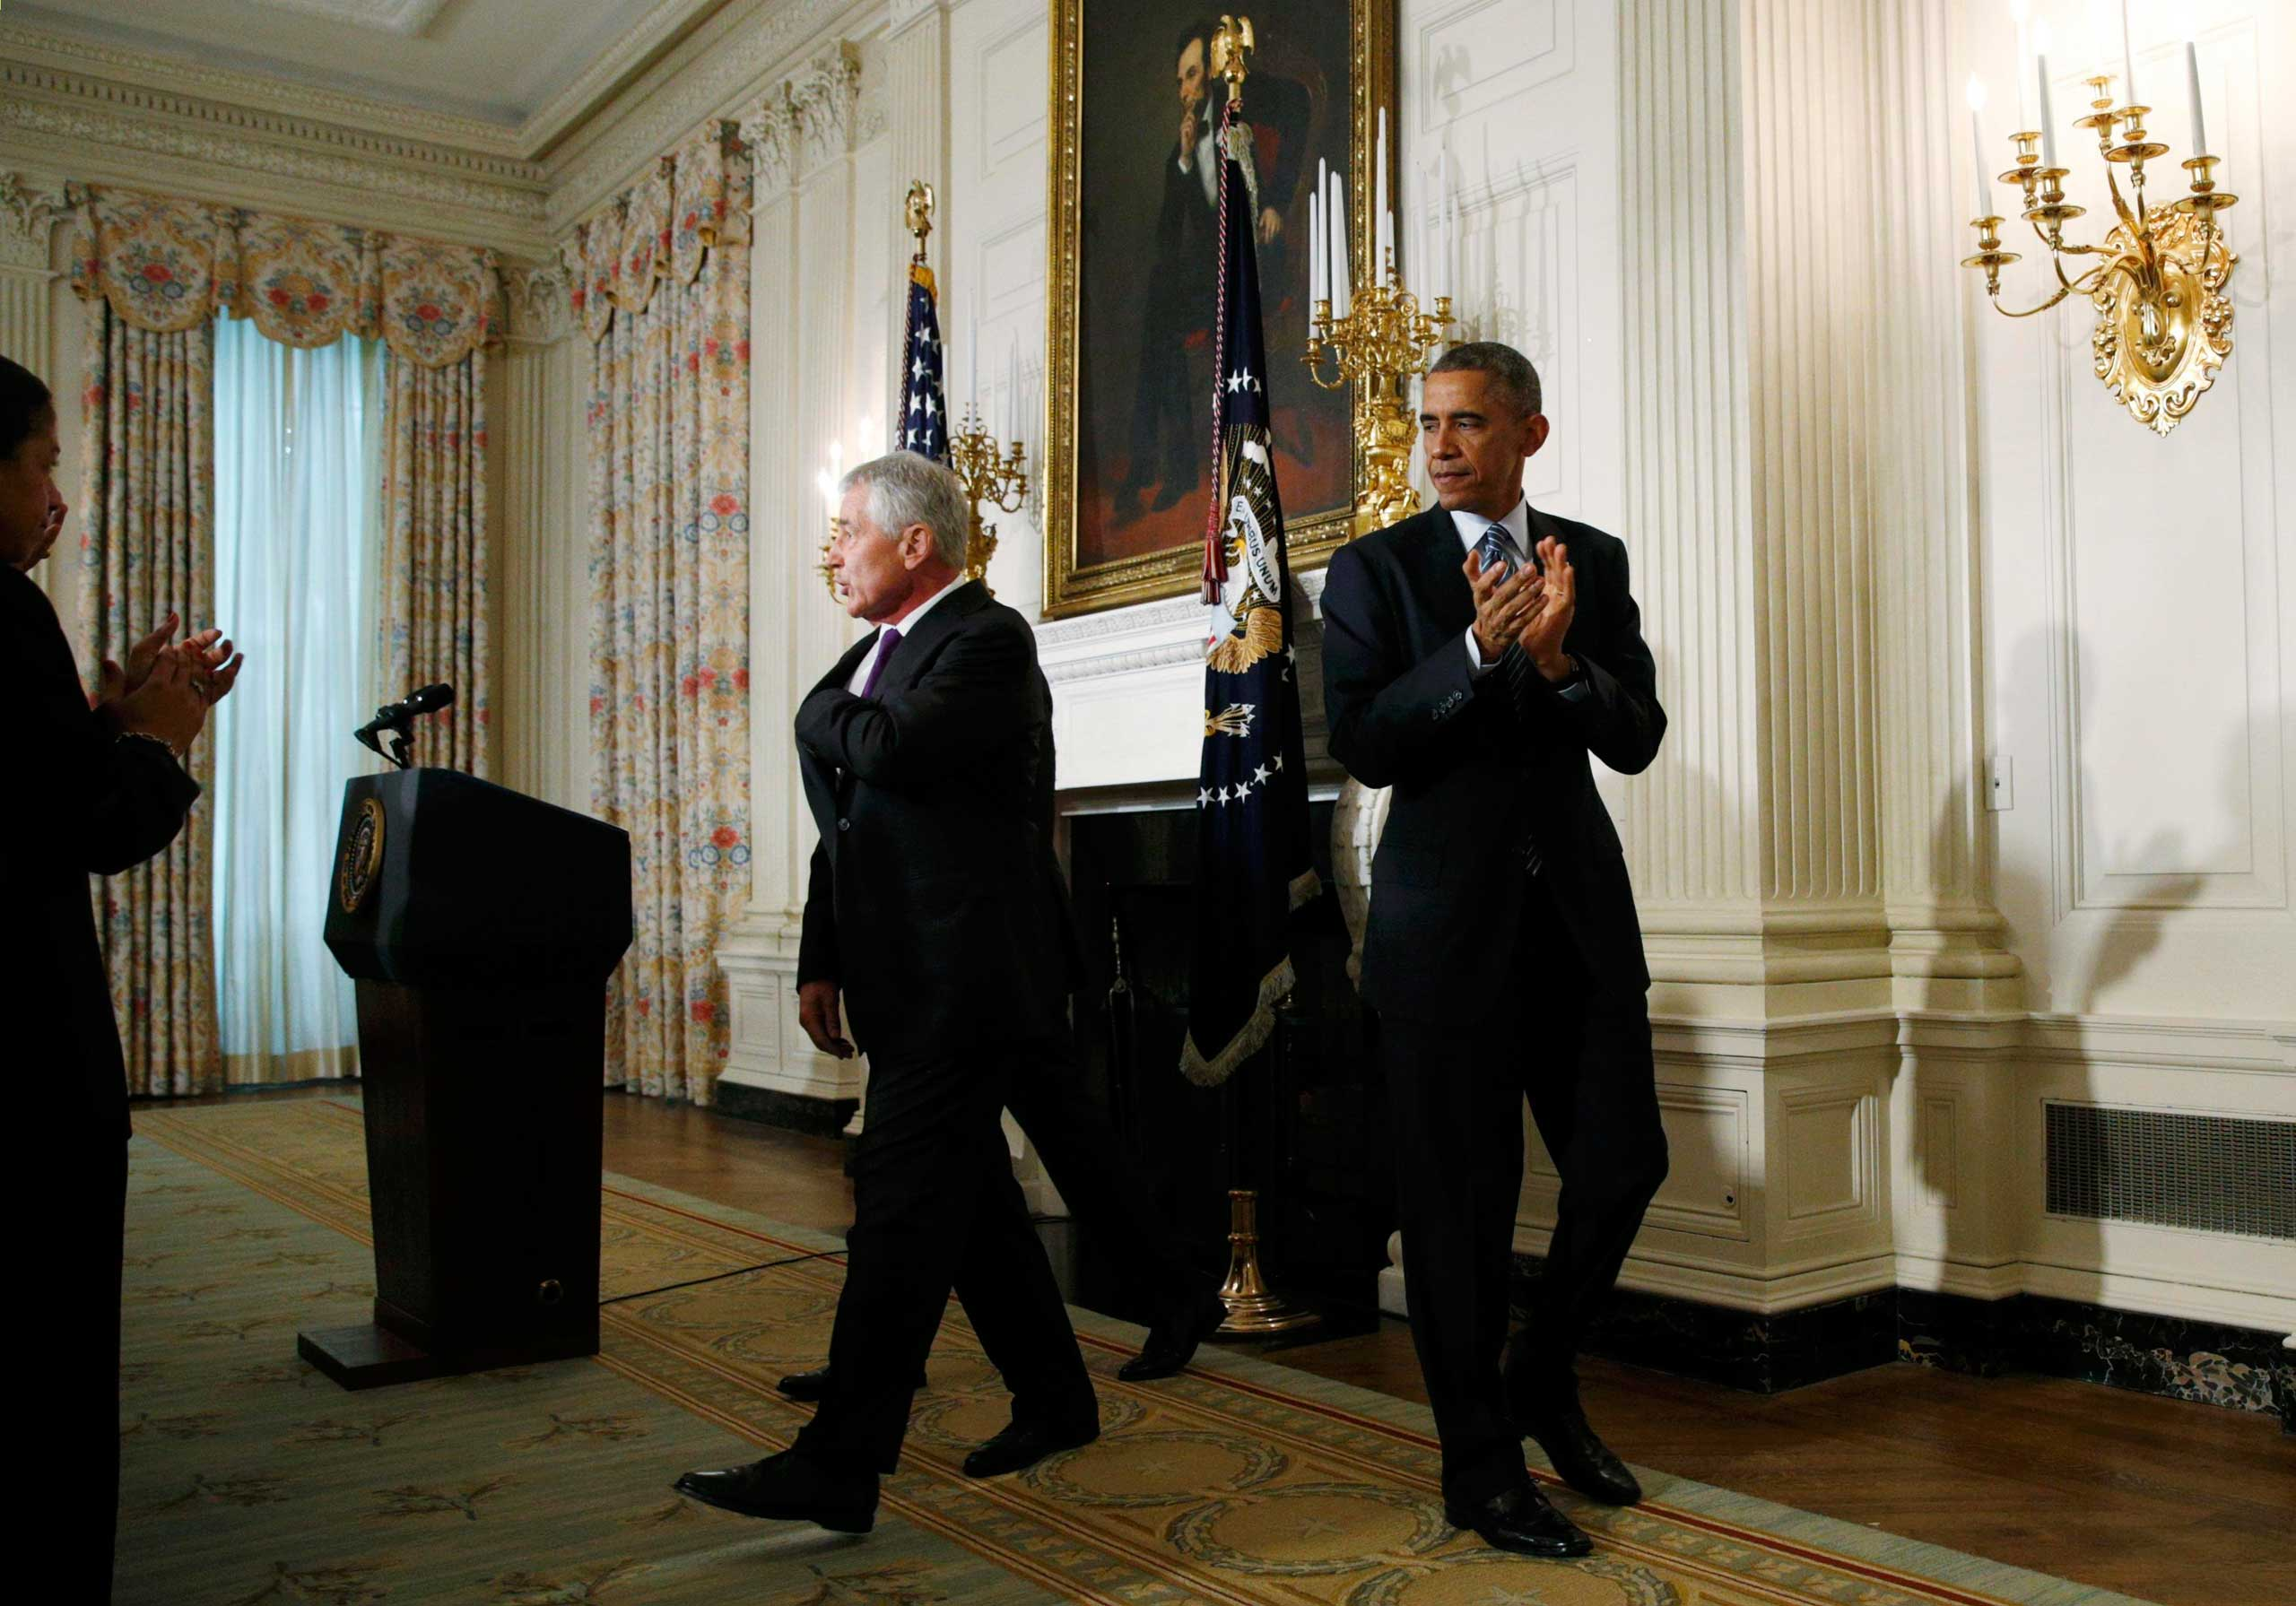 Nov. 24, 2014. U.S. President Barack Obama escorts Secretary of Defense Chuck Hagel out of the state dining room after the men announced Hagel's resignation at the White House in Washington, D.C.